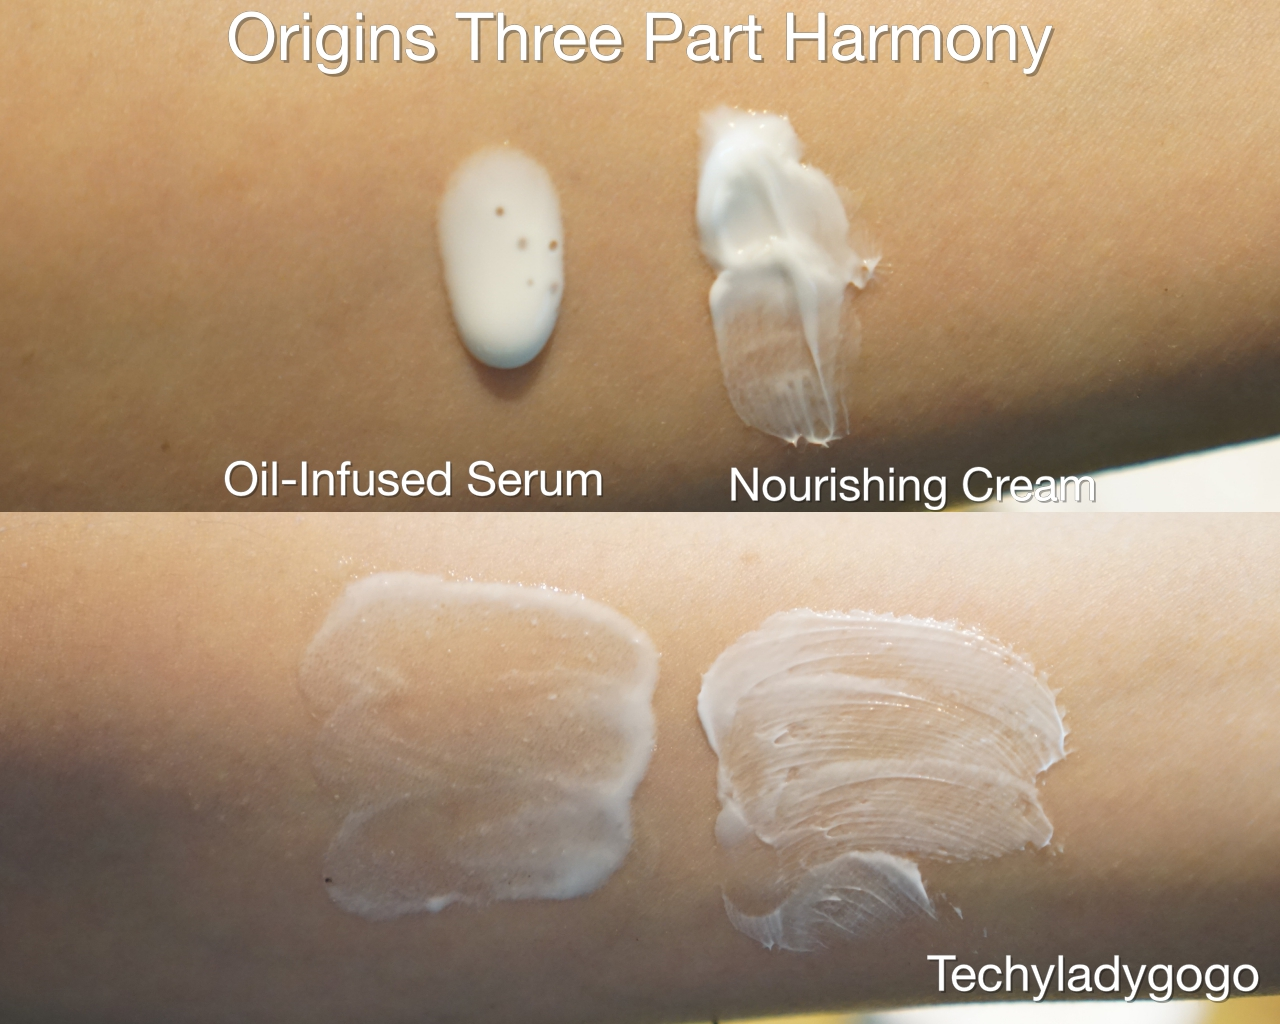 ORIGINS Three Part Harmony Texture of cream and serum